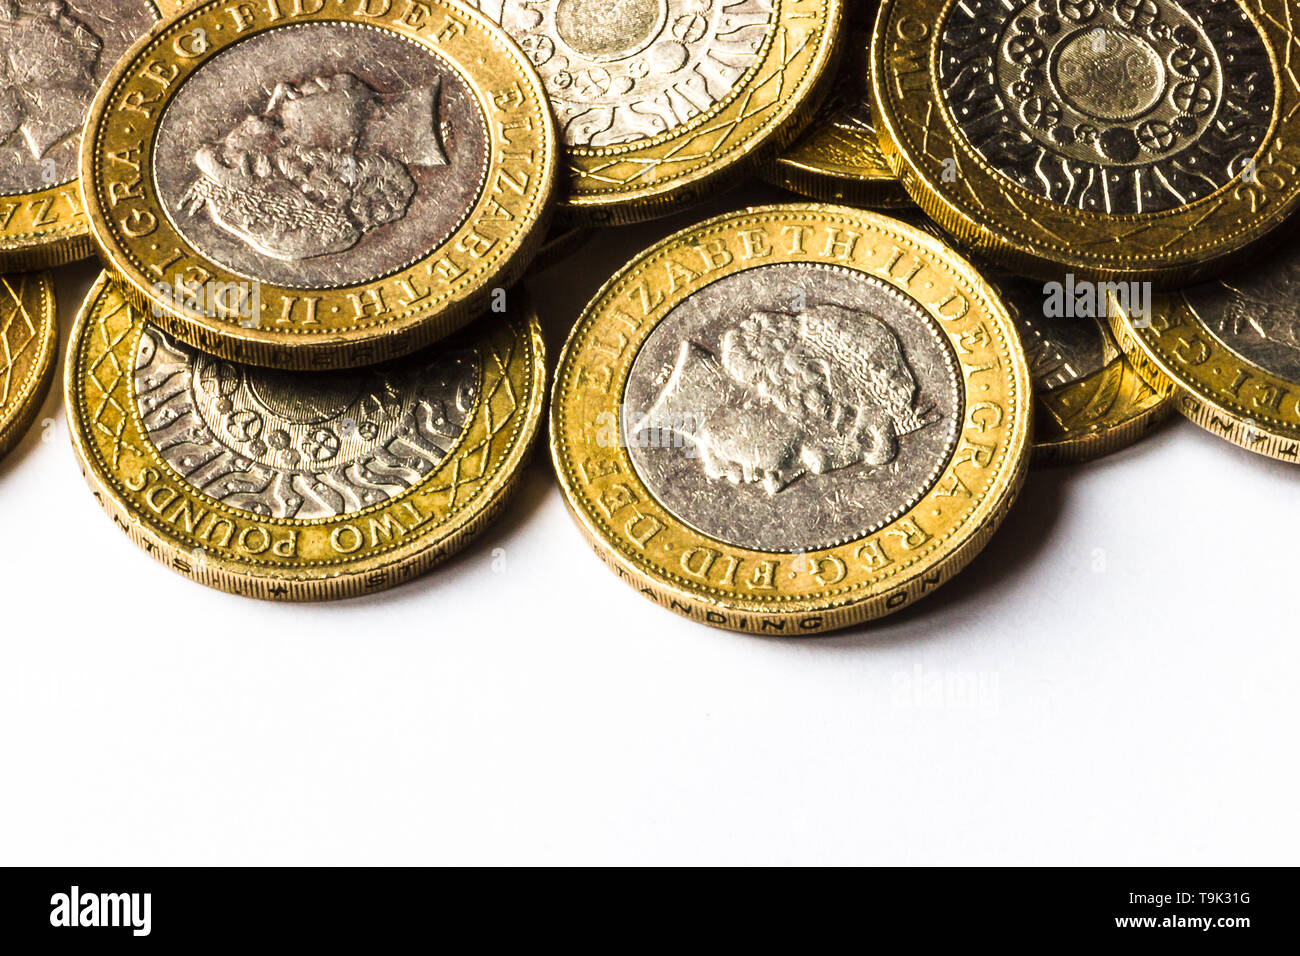 A pile of two pound coins. - Stock Image